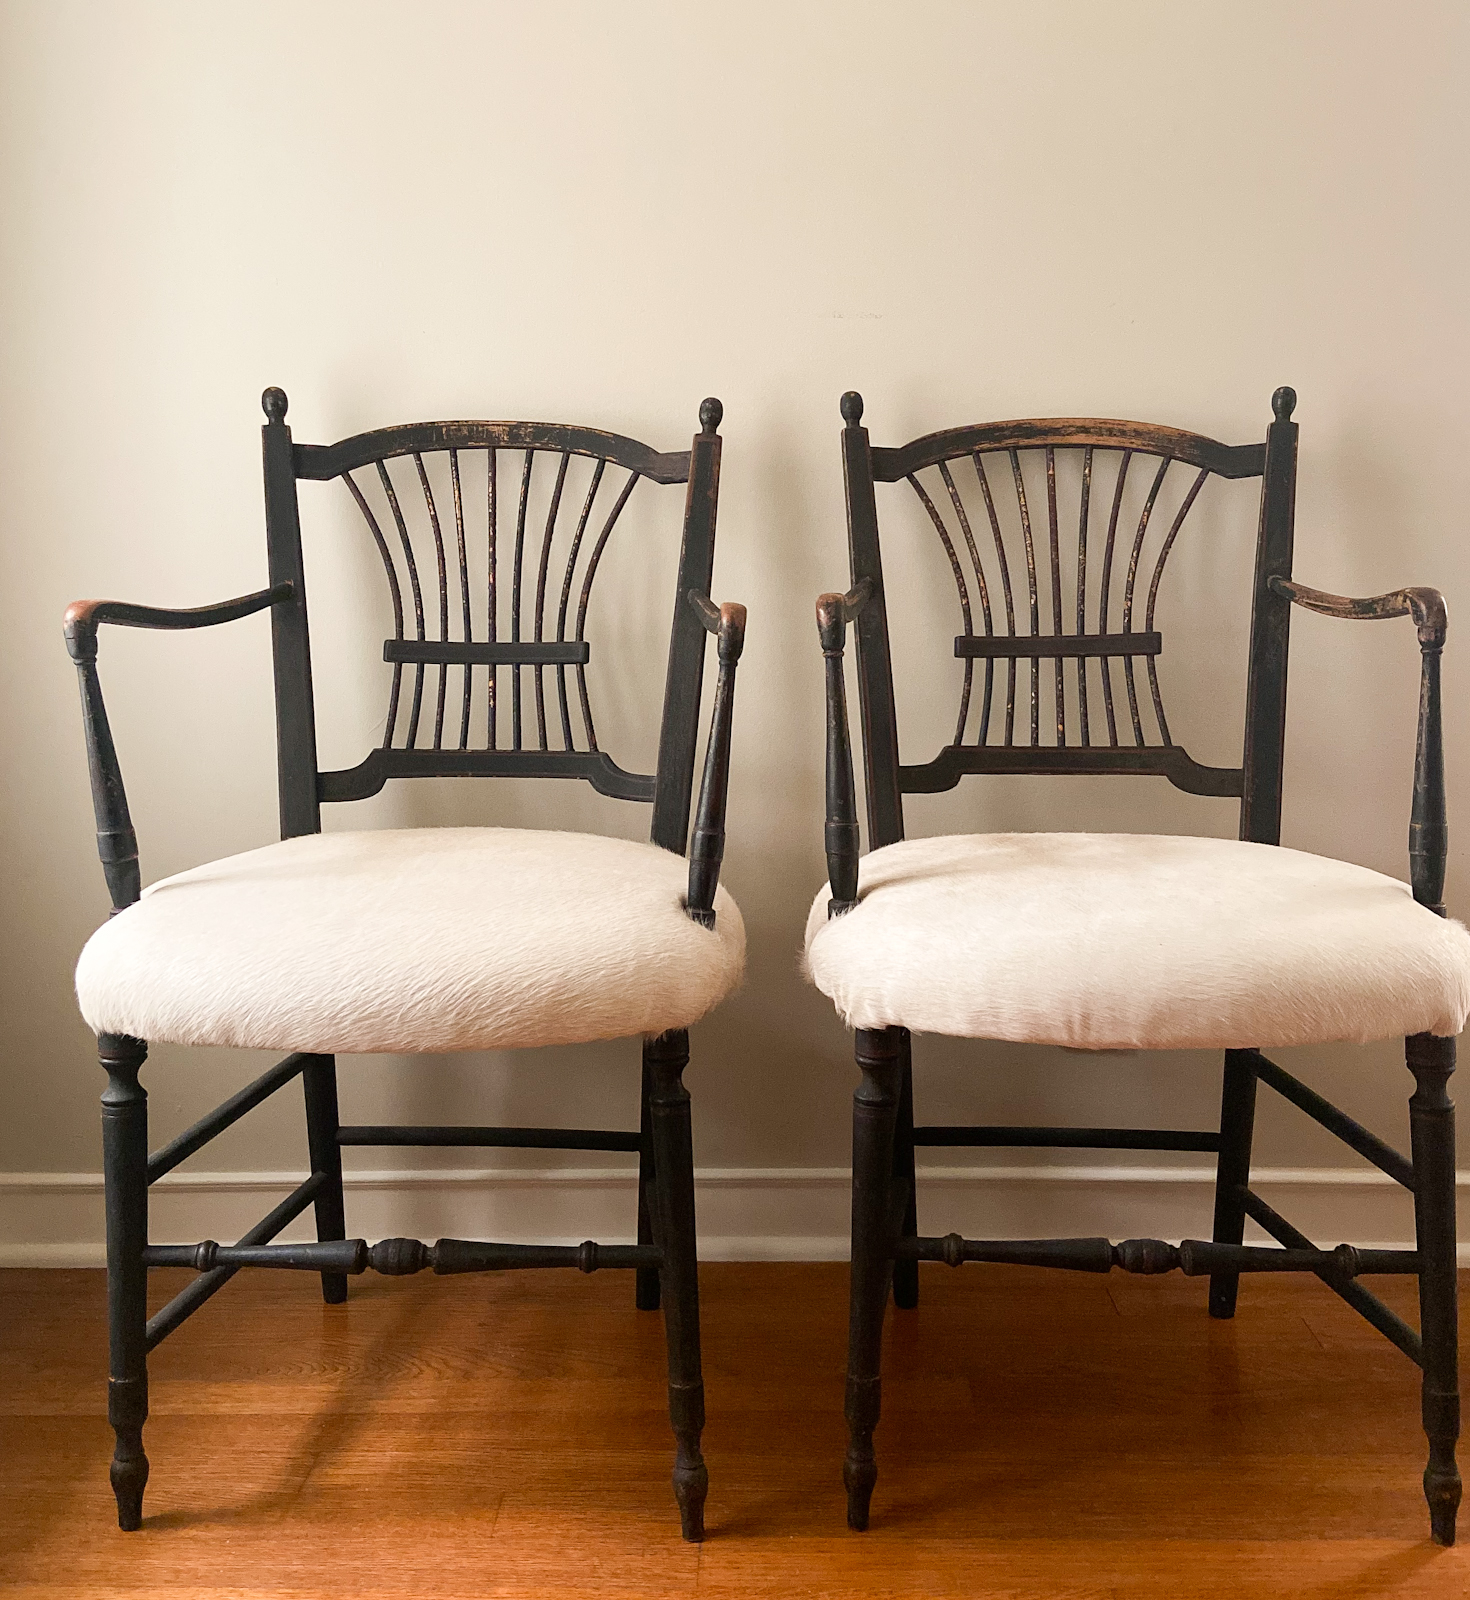 Antique French Chairs Upholstered in White Cowhide by Cindy Hattersley Design